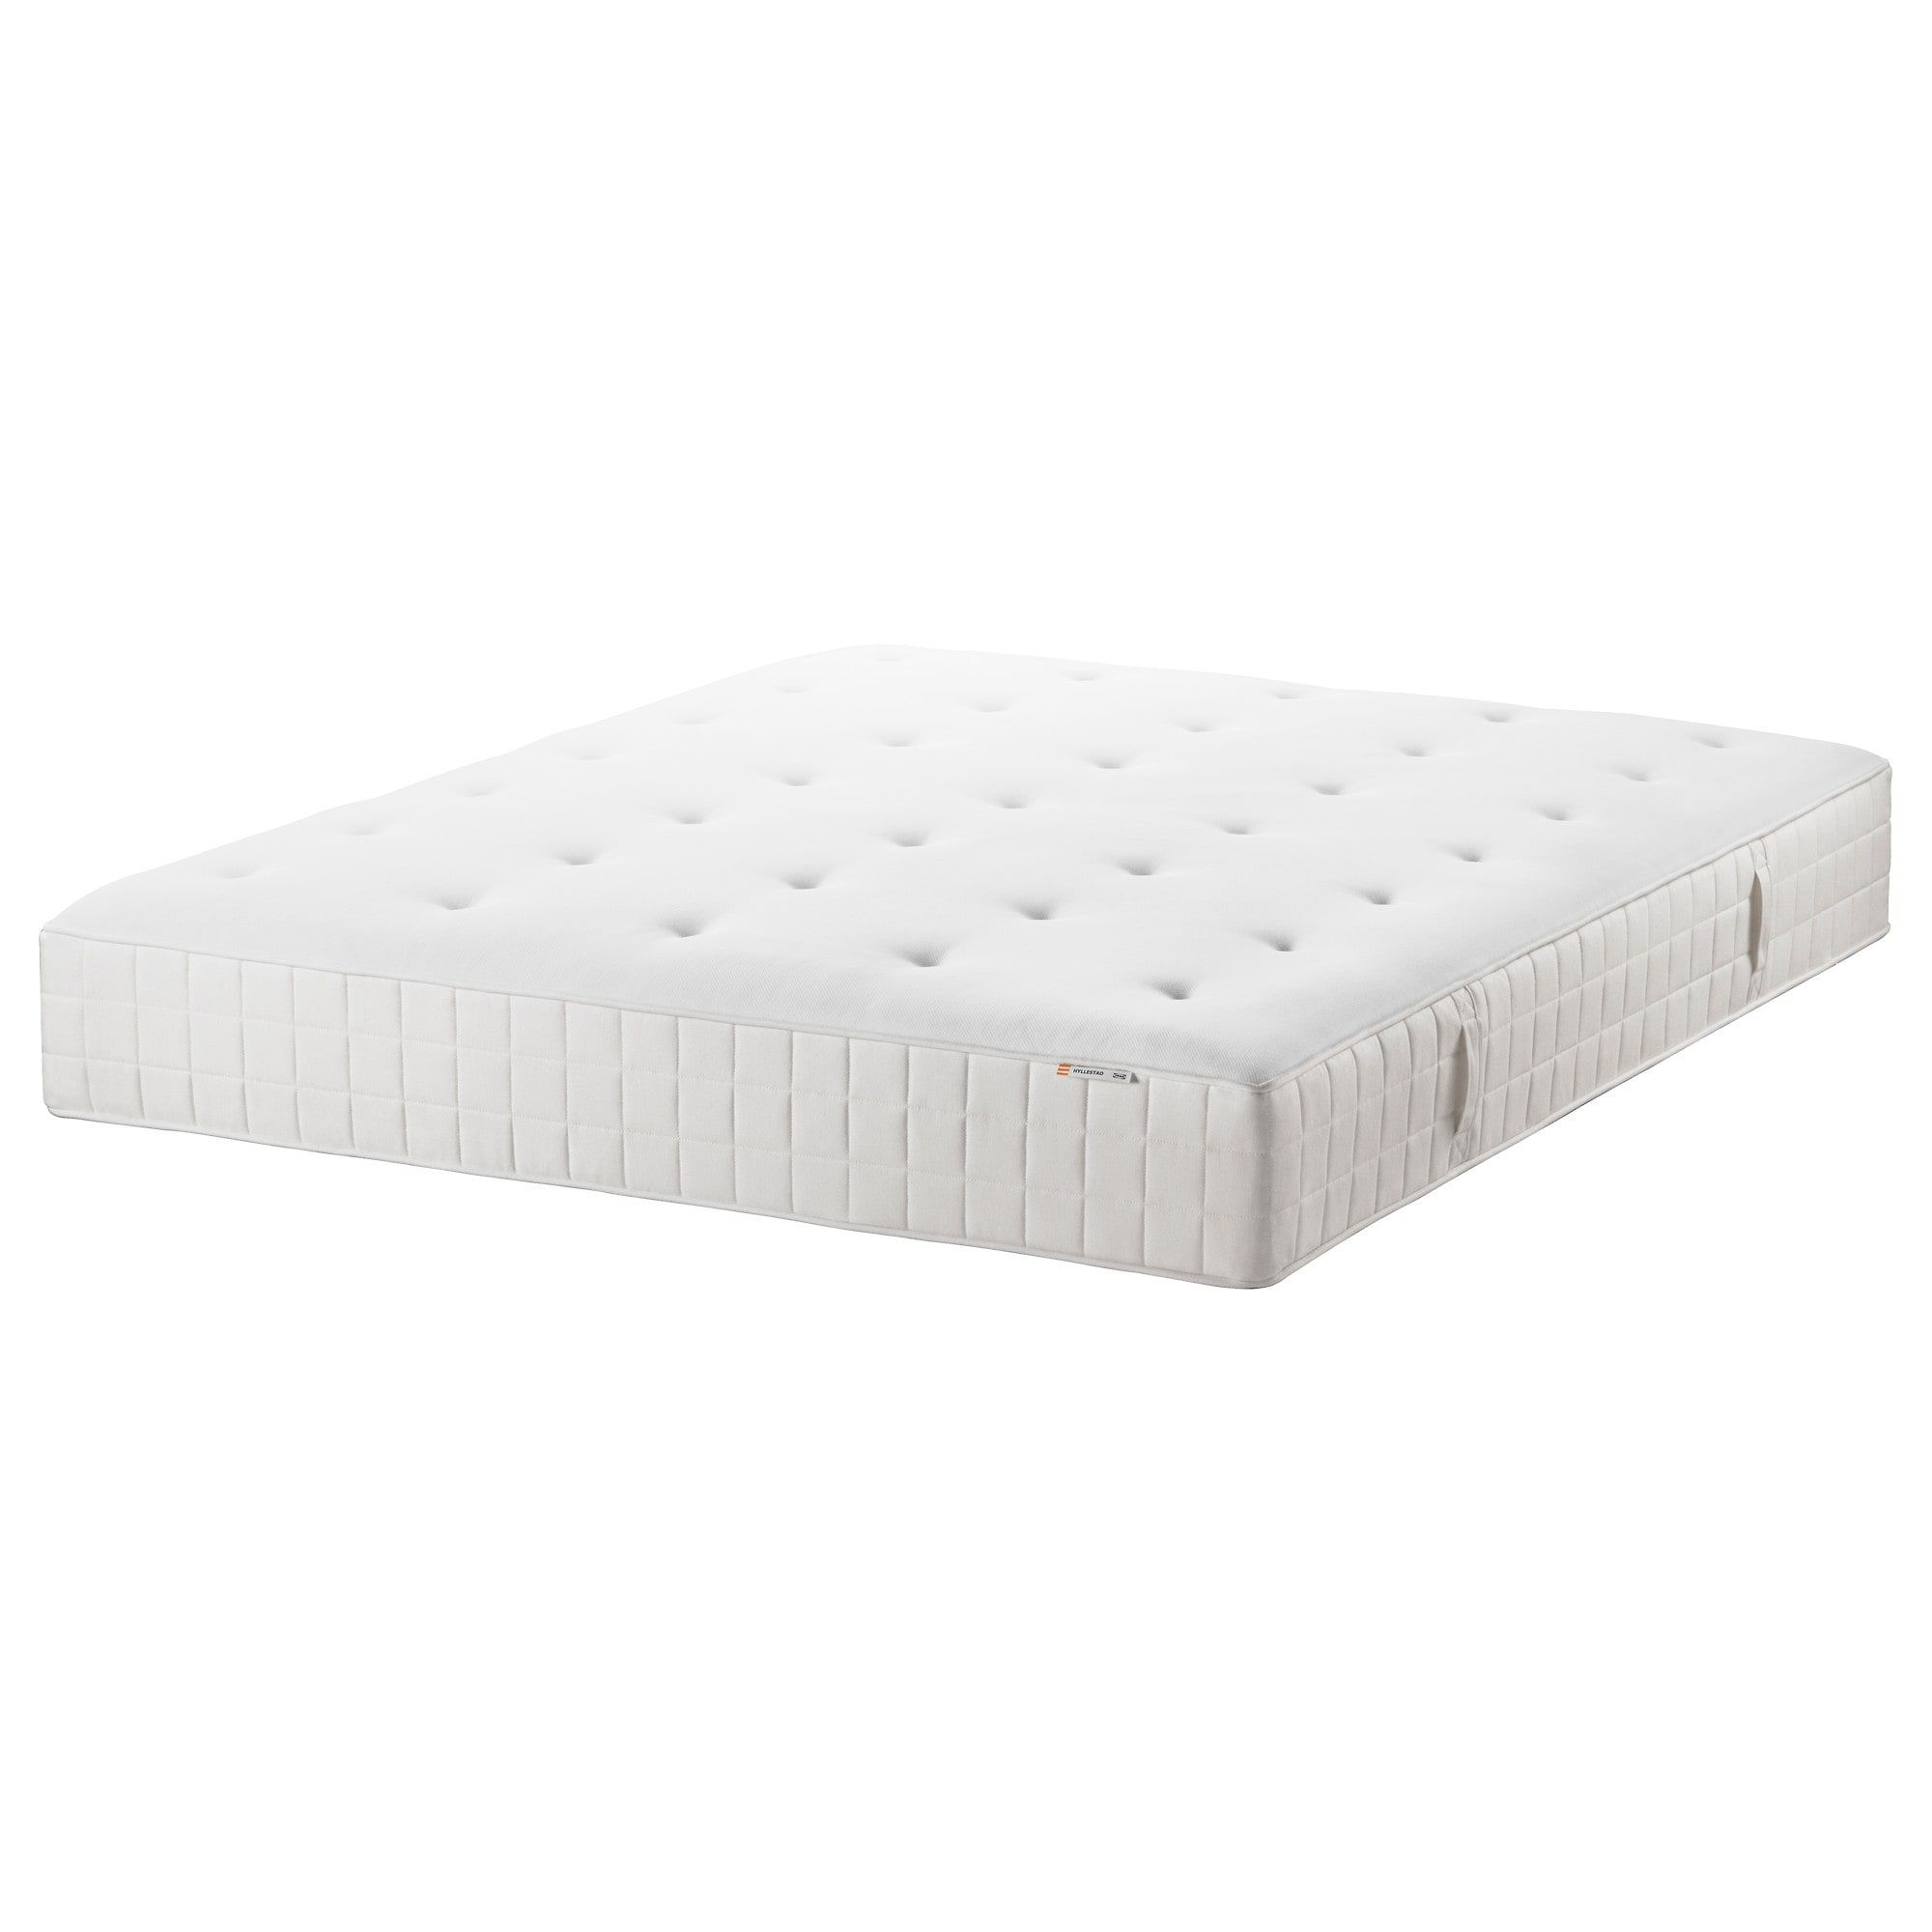 Hyllestad Spring Mattresses Ikea Mattress Sofa Bed With Chaise